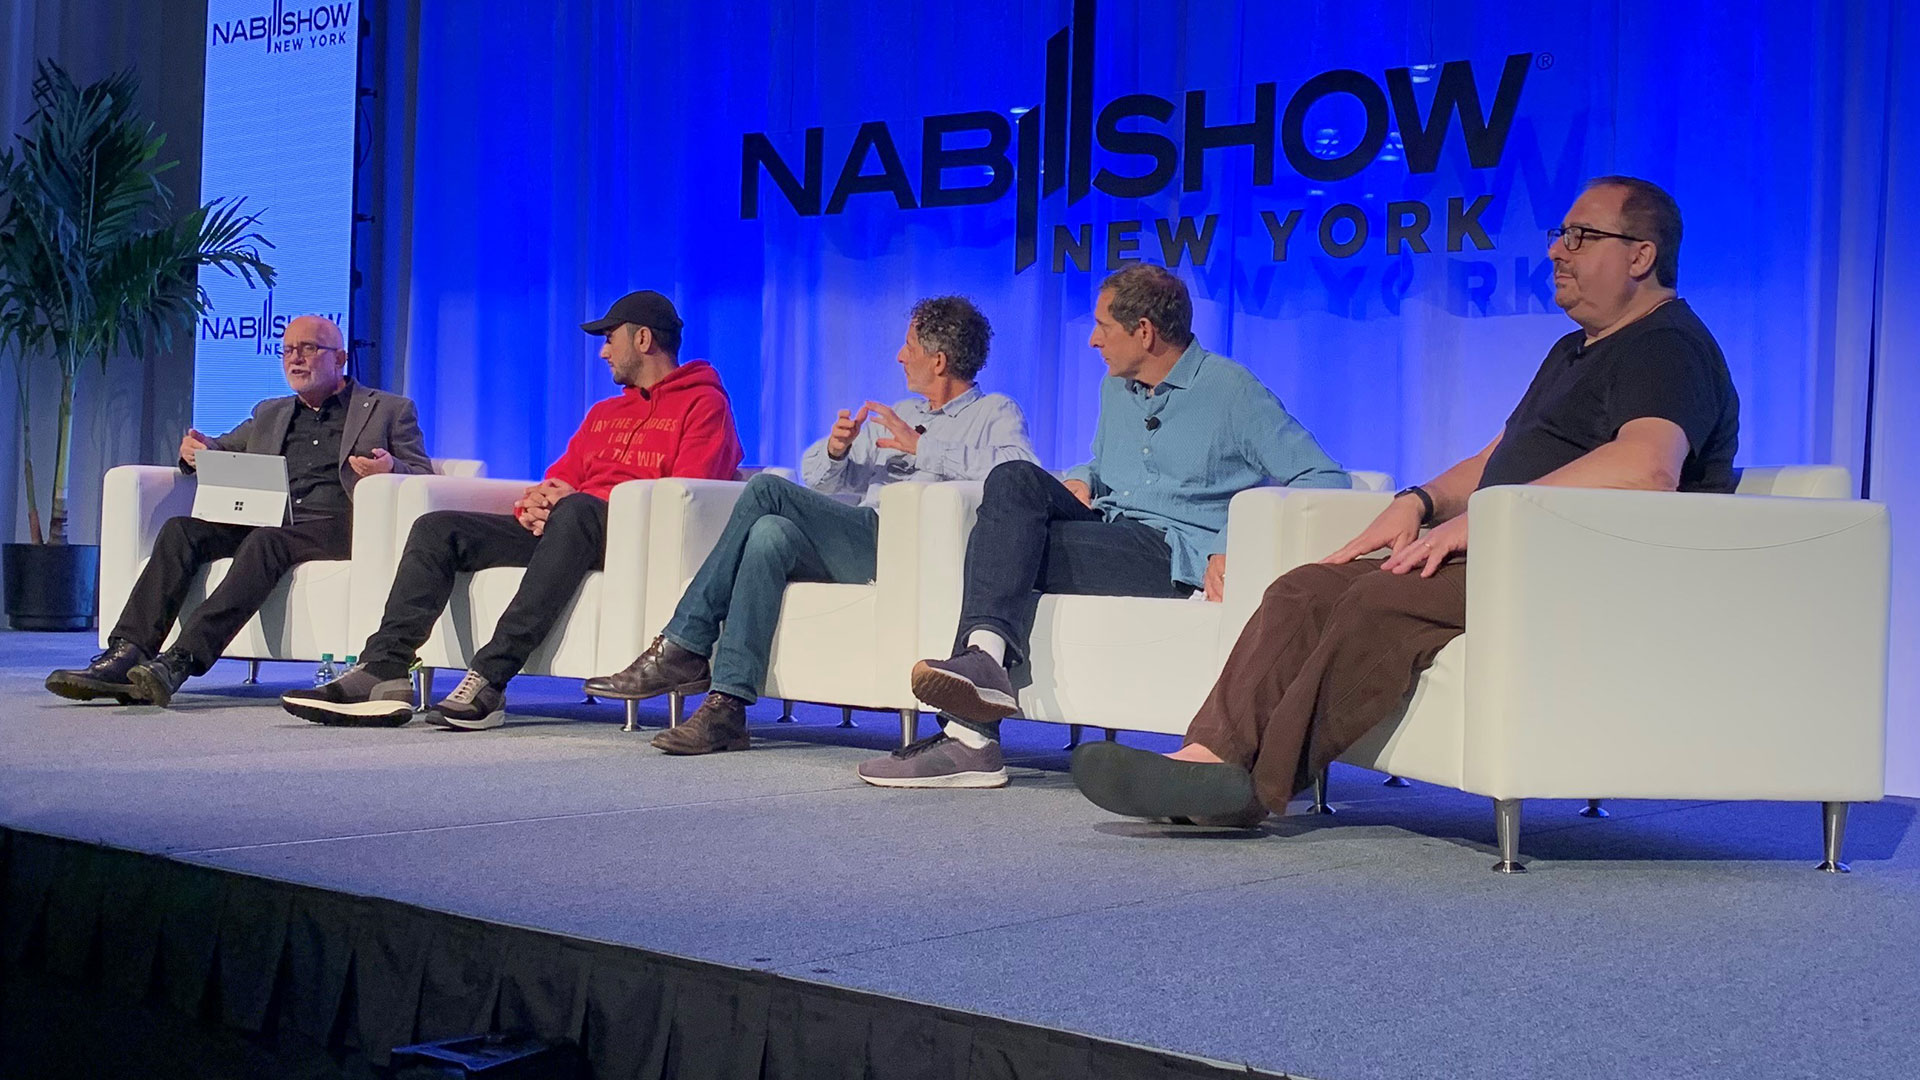 Panelists on stage at NAB New York